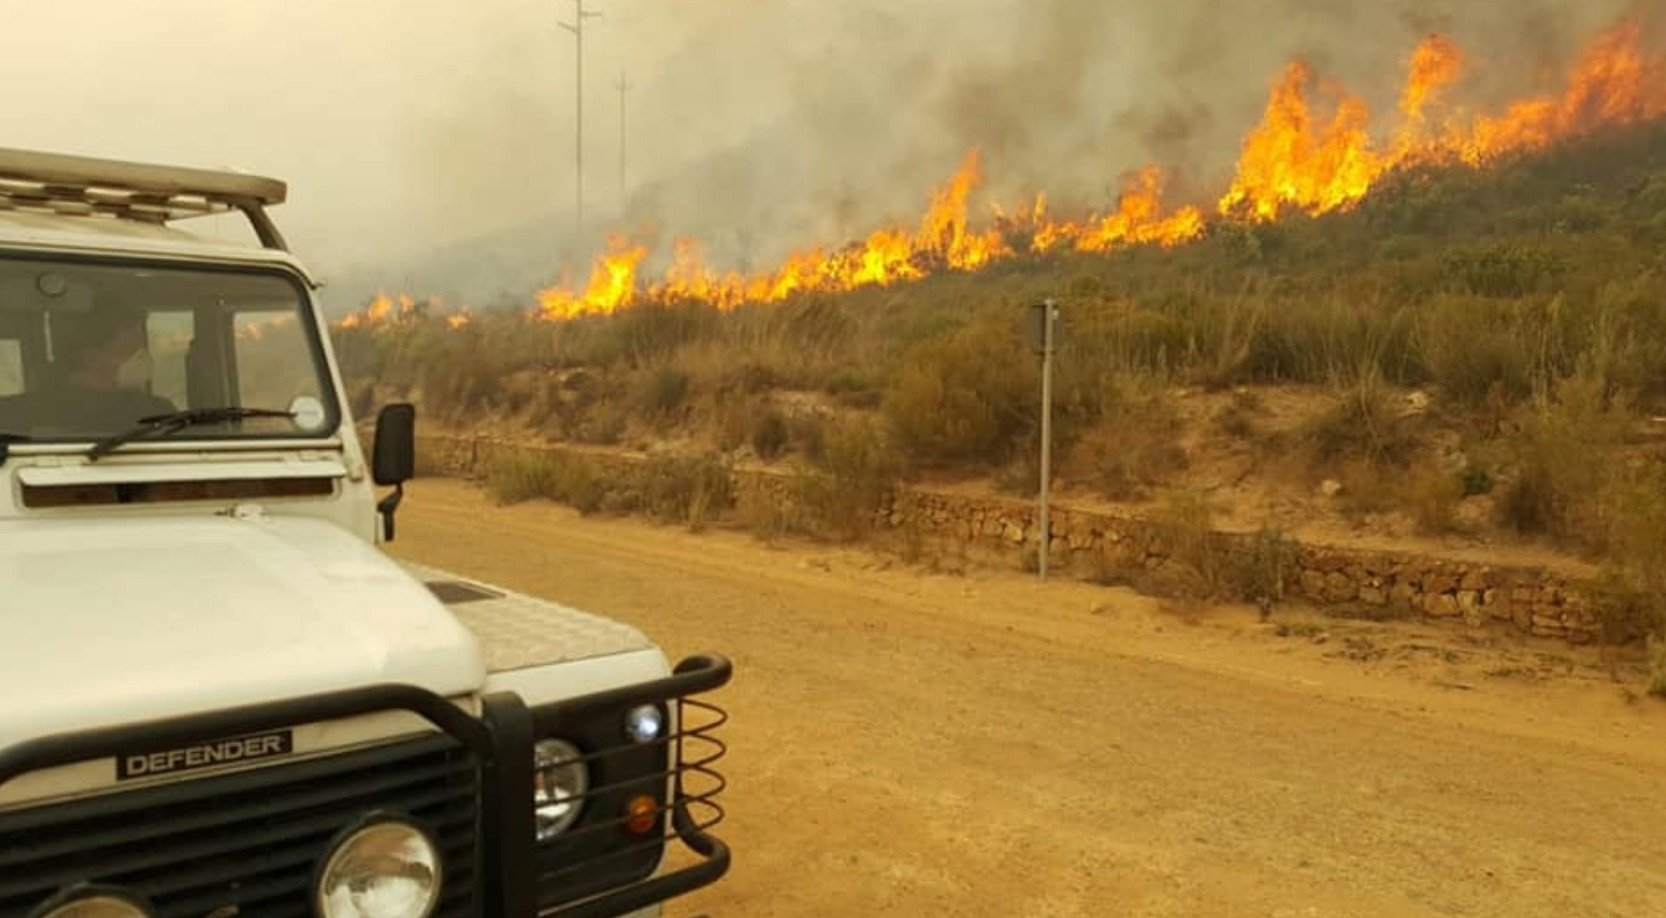 Fire in South Africa